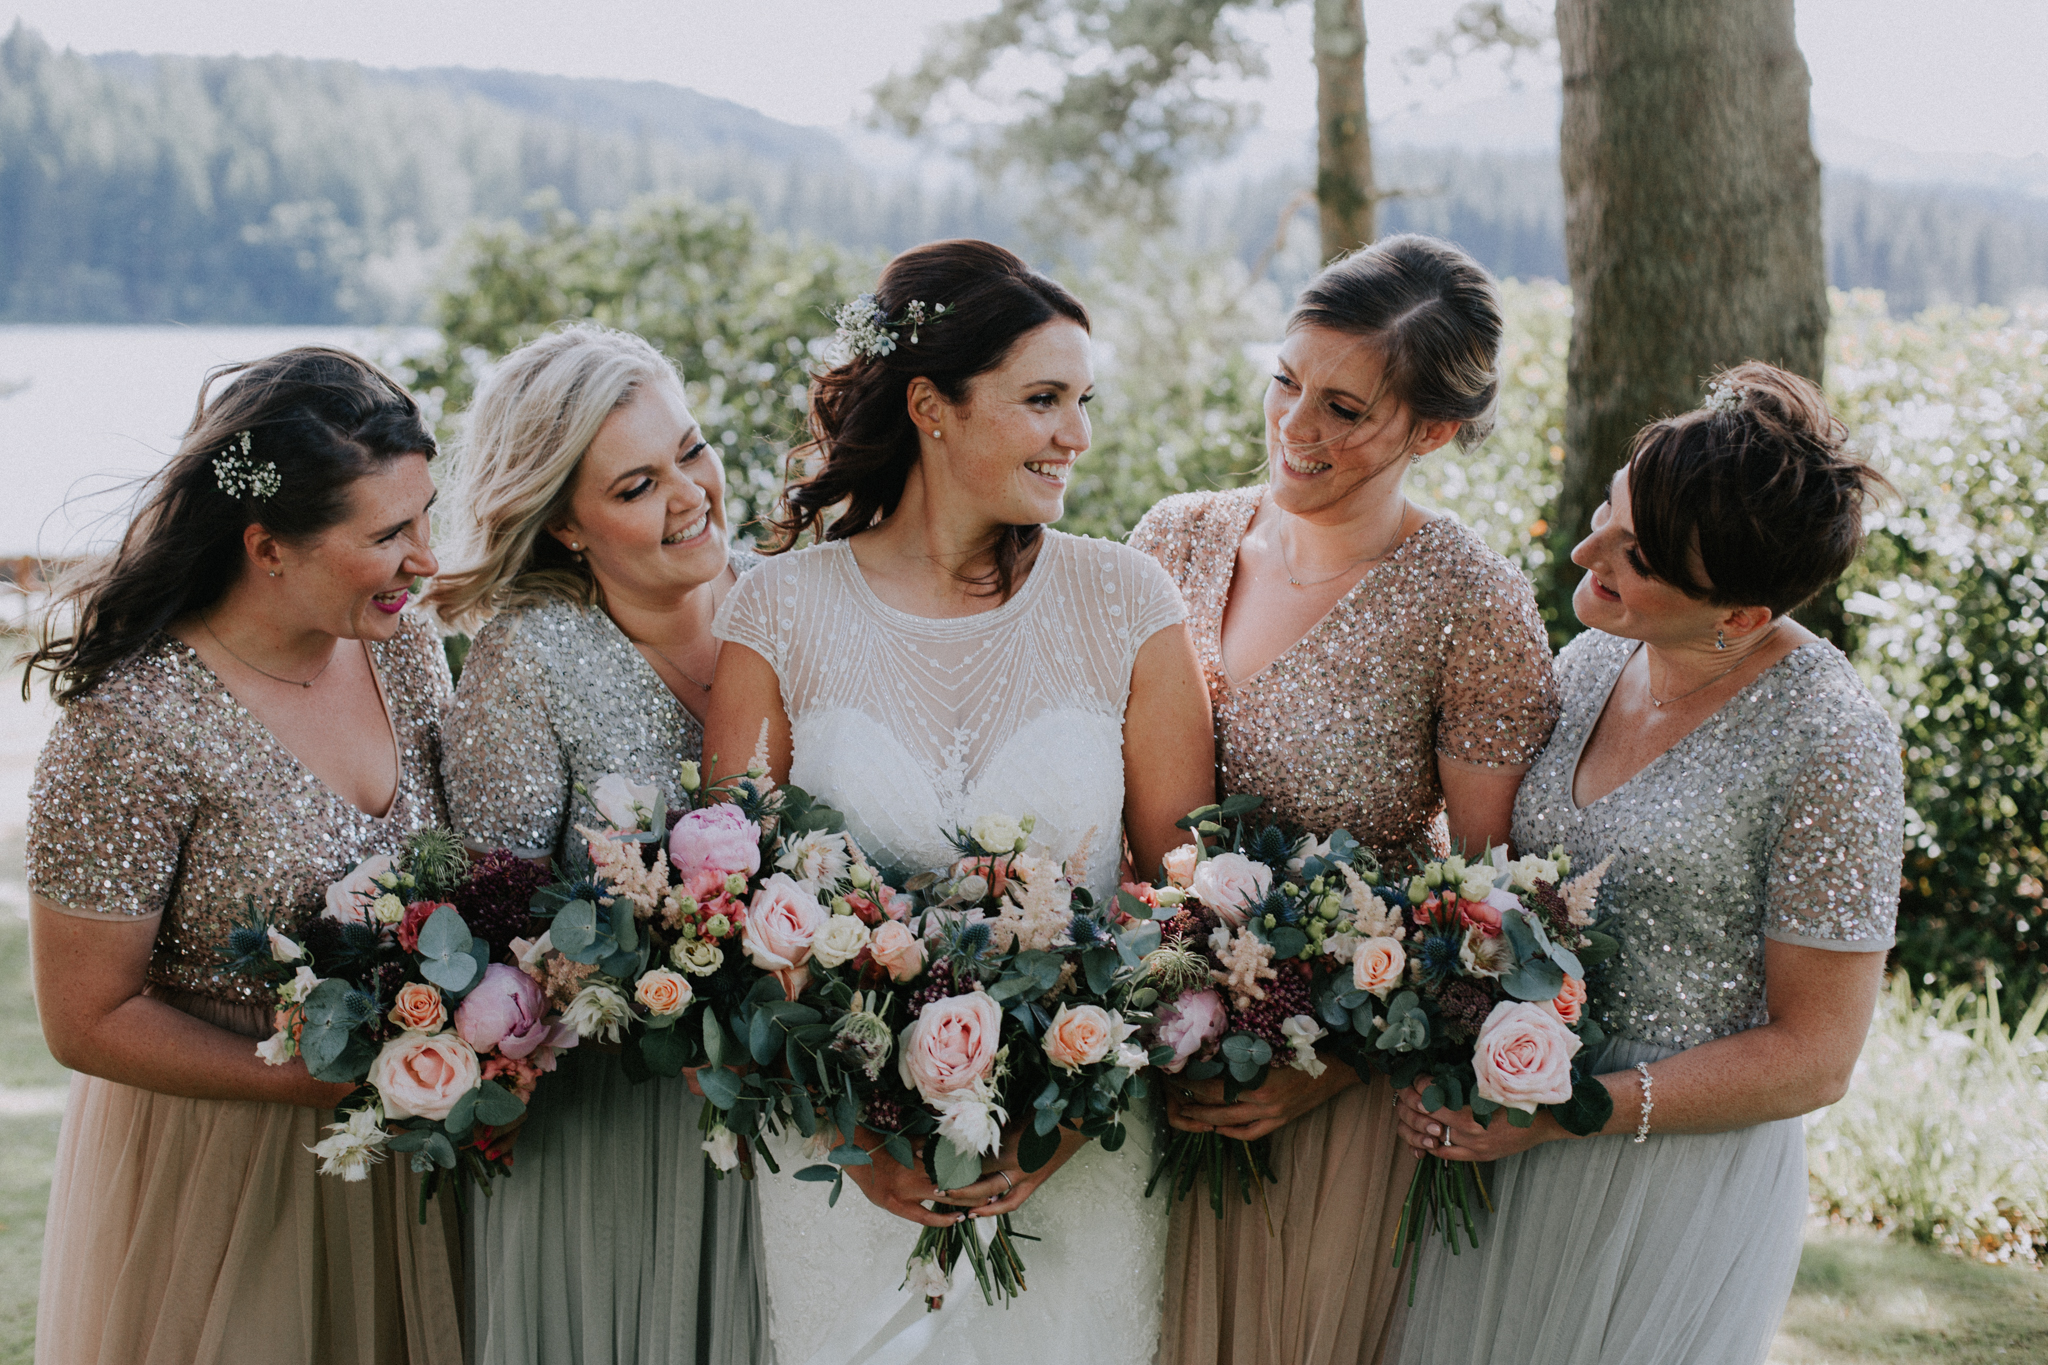 A beautiful portrait of the bridesmaids with the bride